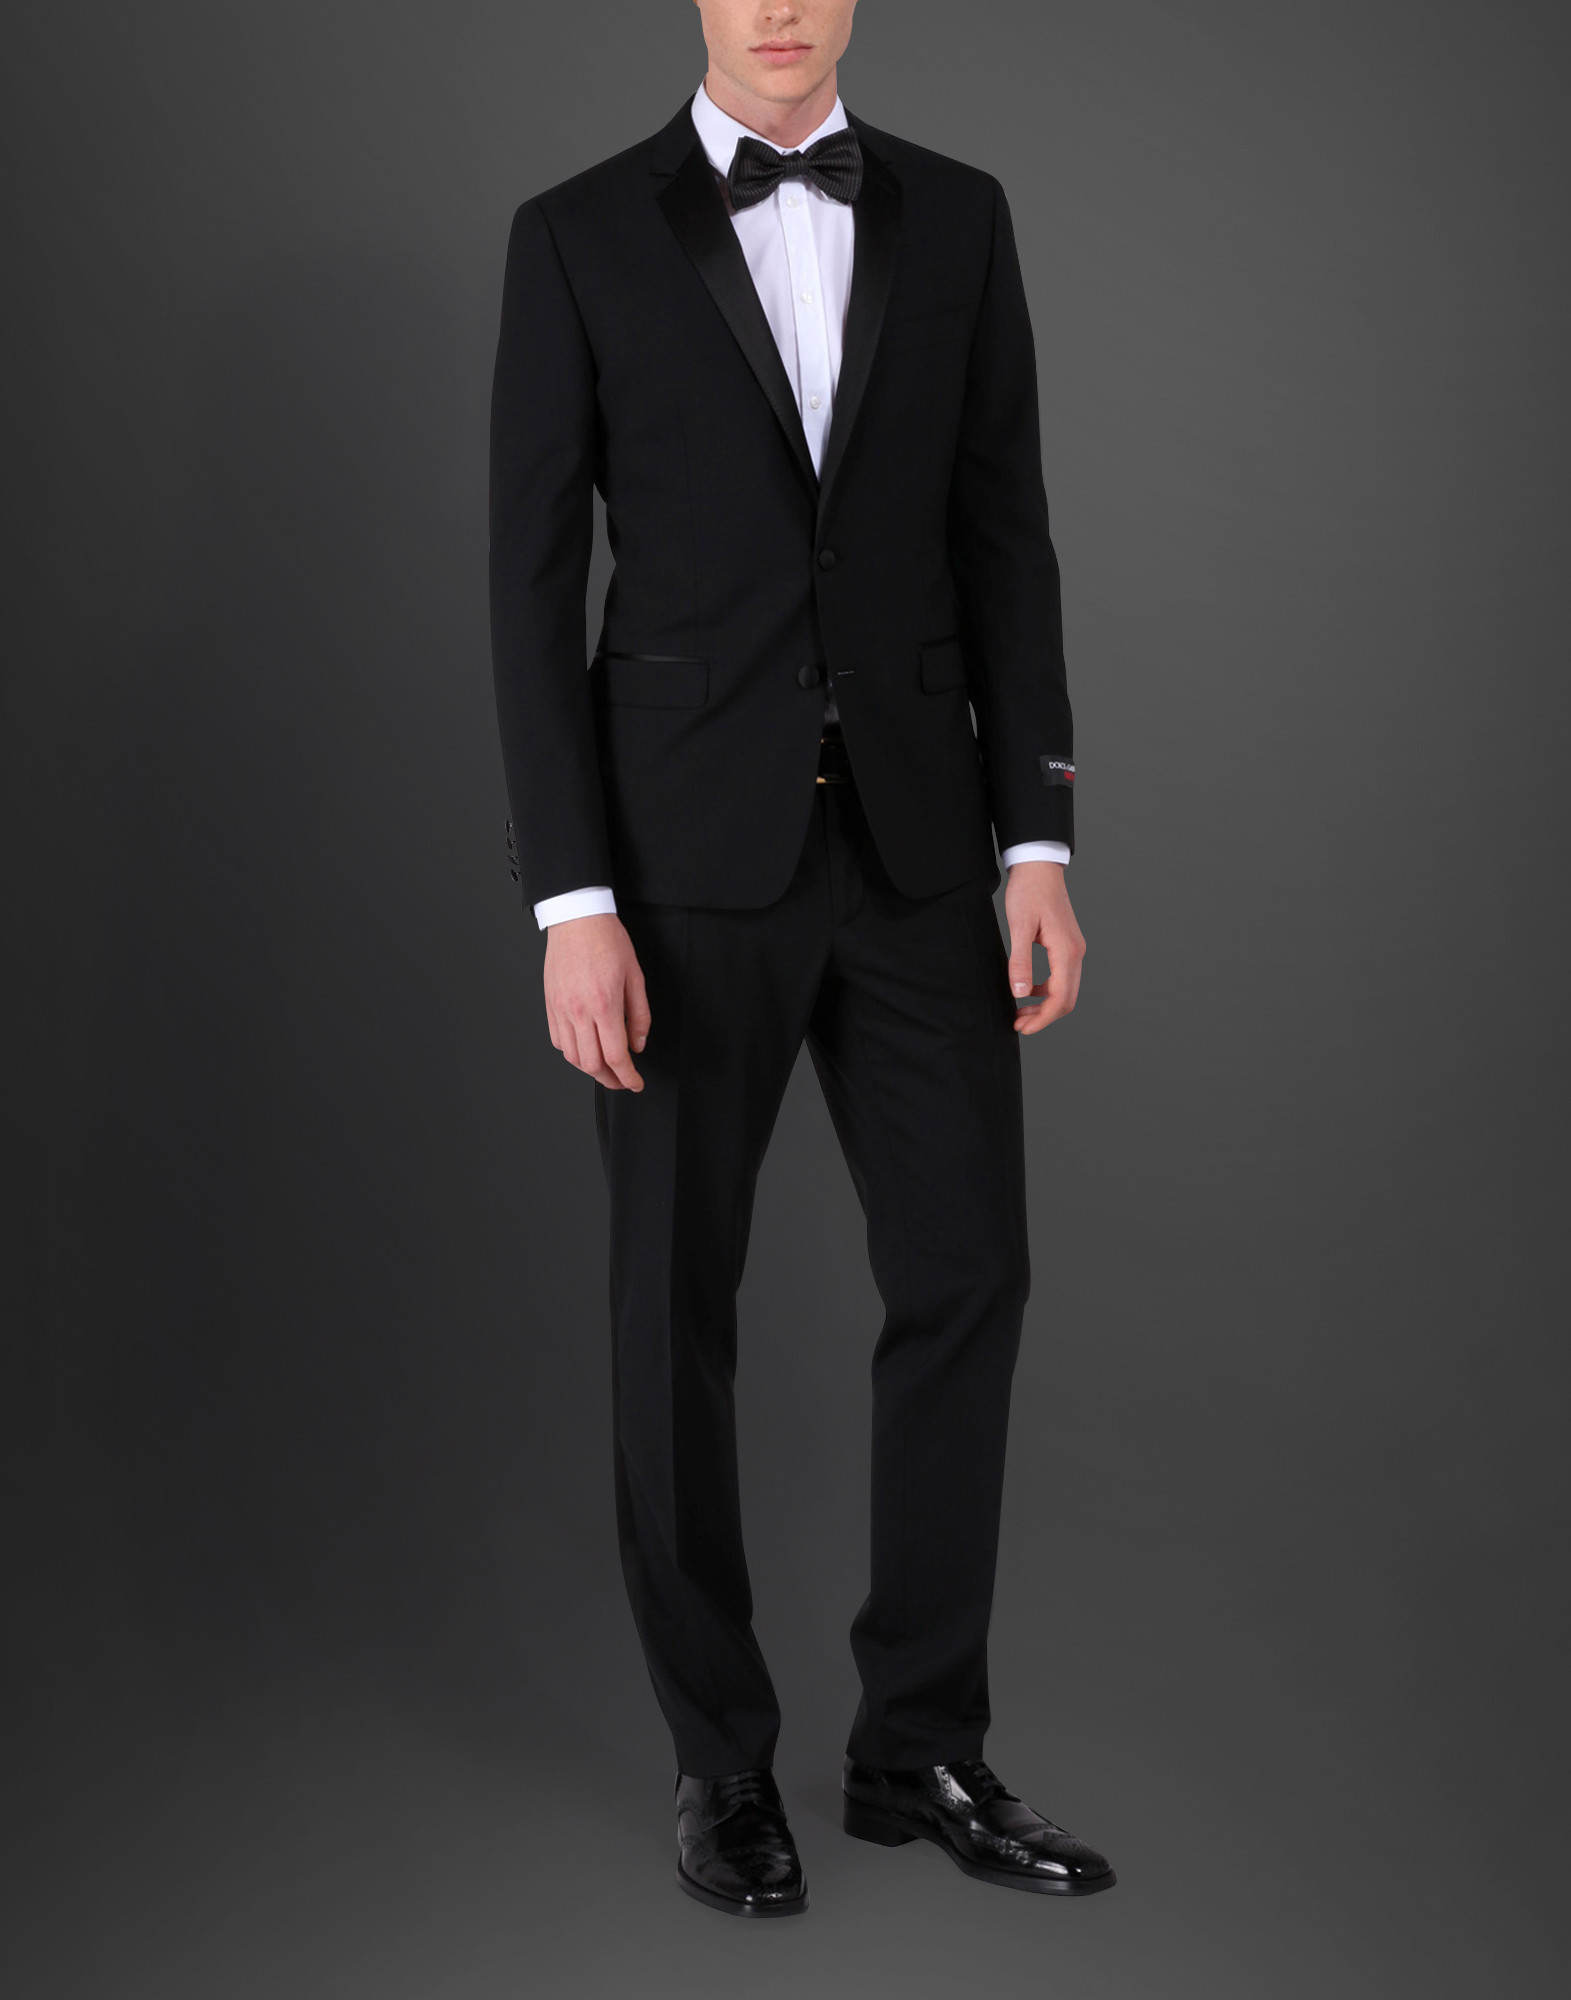 Pictures of Men in Suits 2 Button